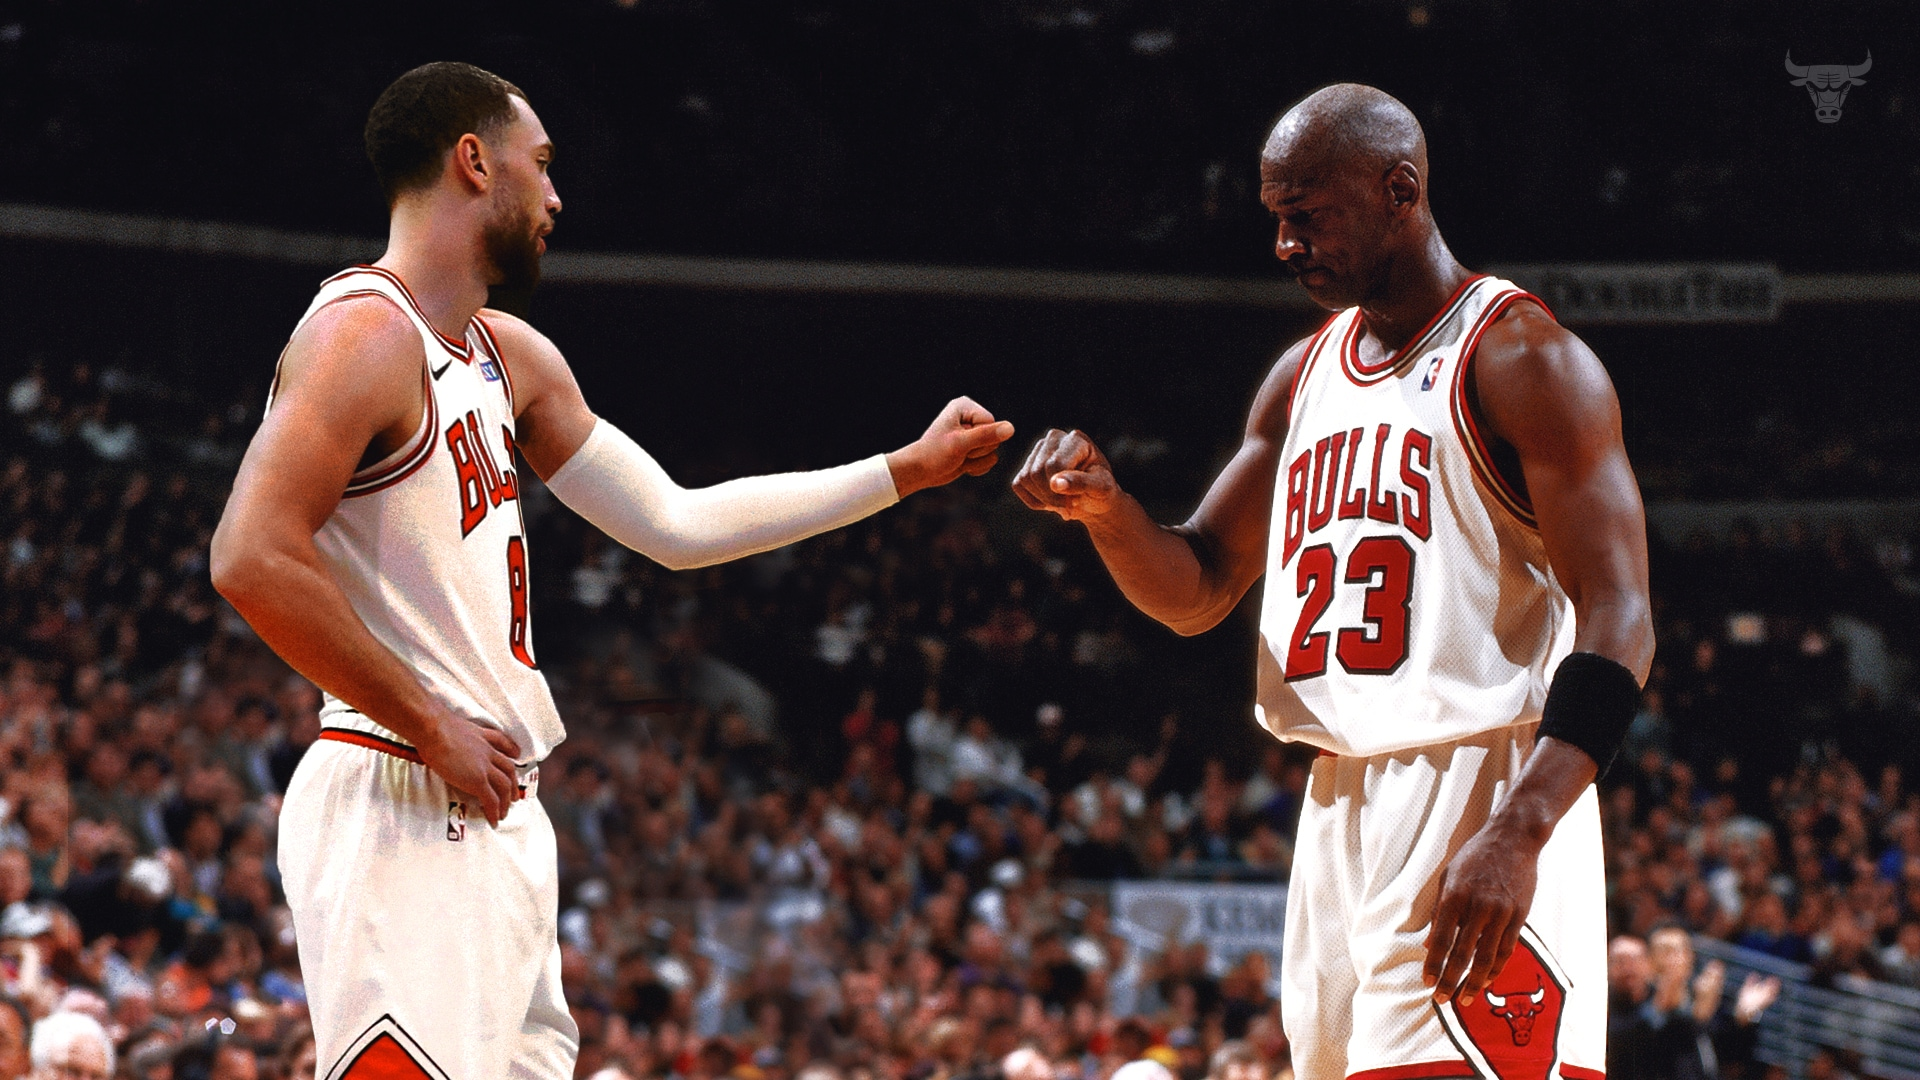 Zach Fist Bumping MJ